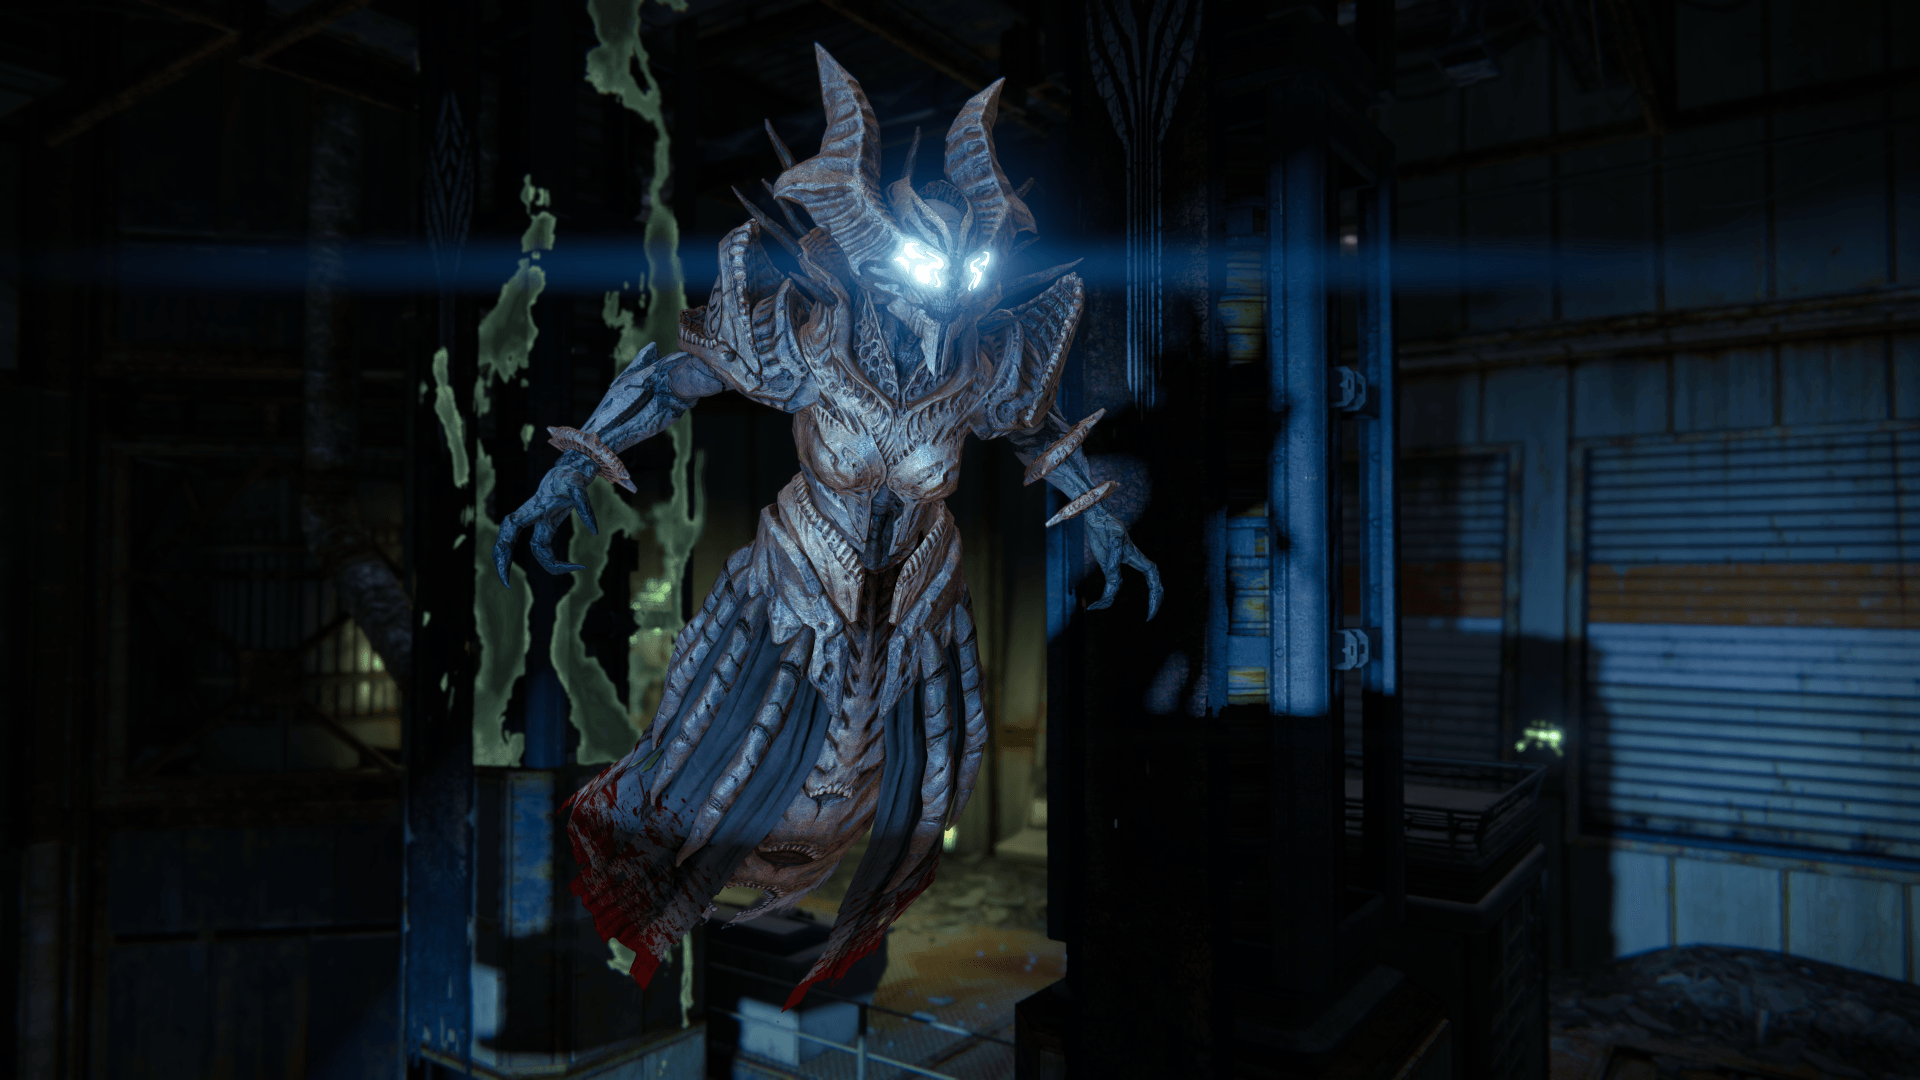 Omnigul is one of the coolest enemies to be introduced in The Dark Below. She's threatening and storied.